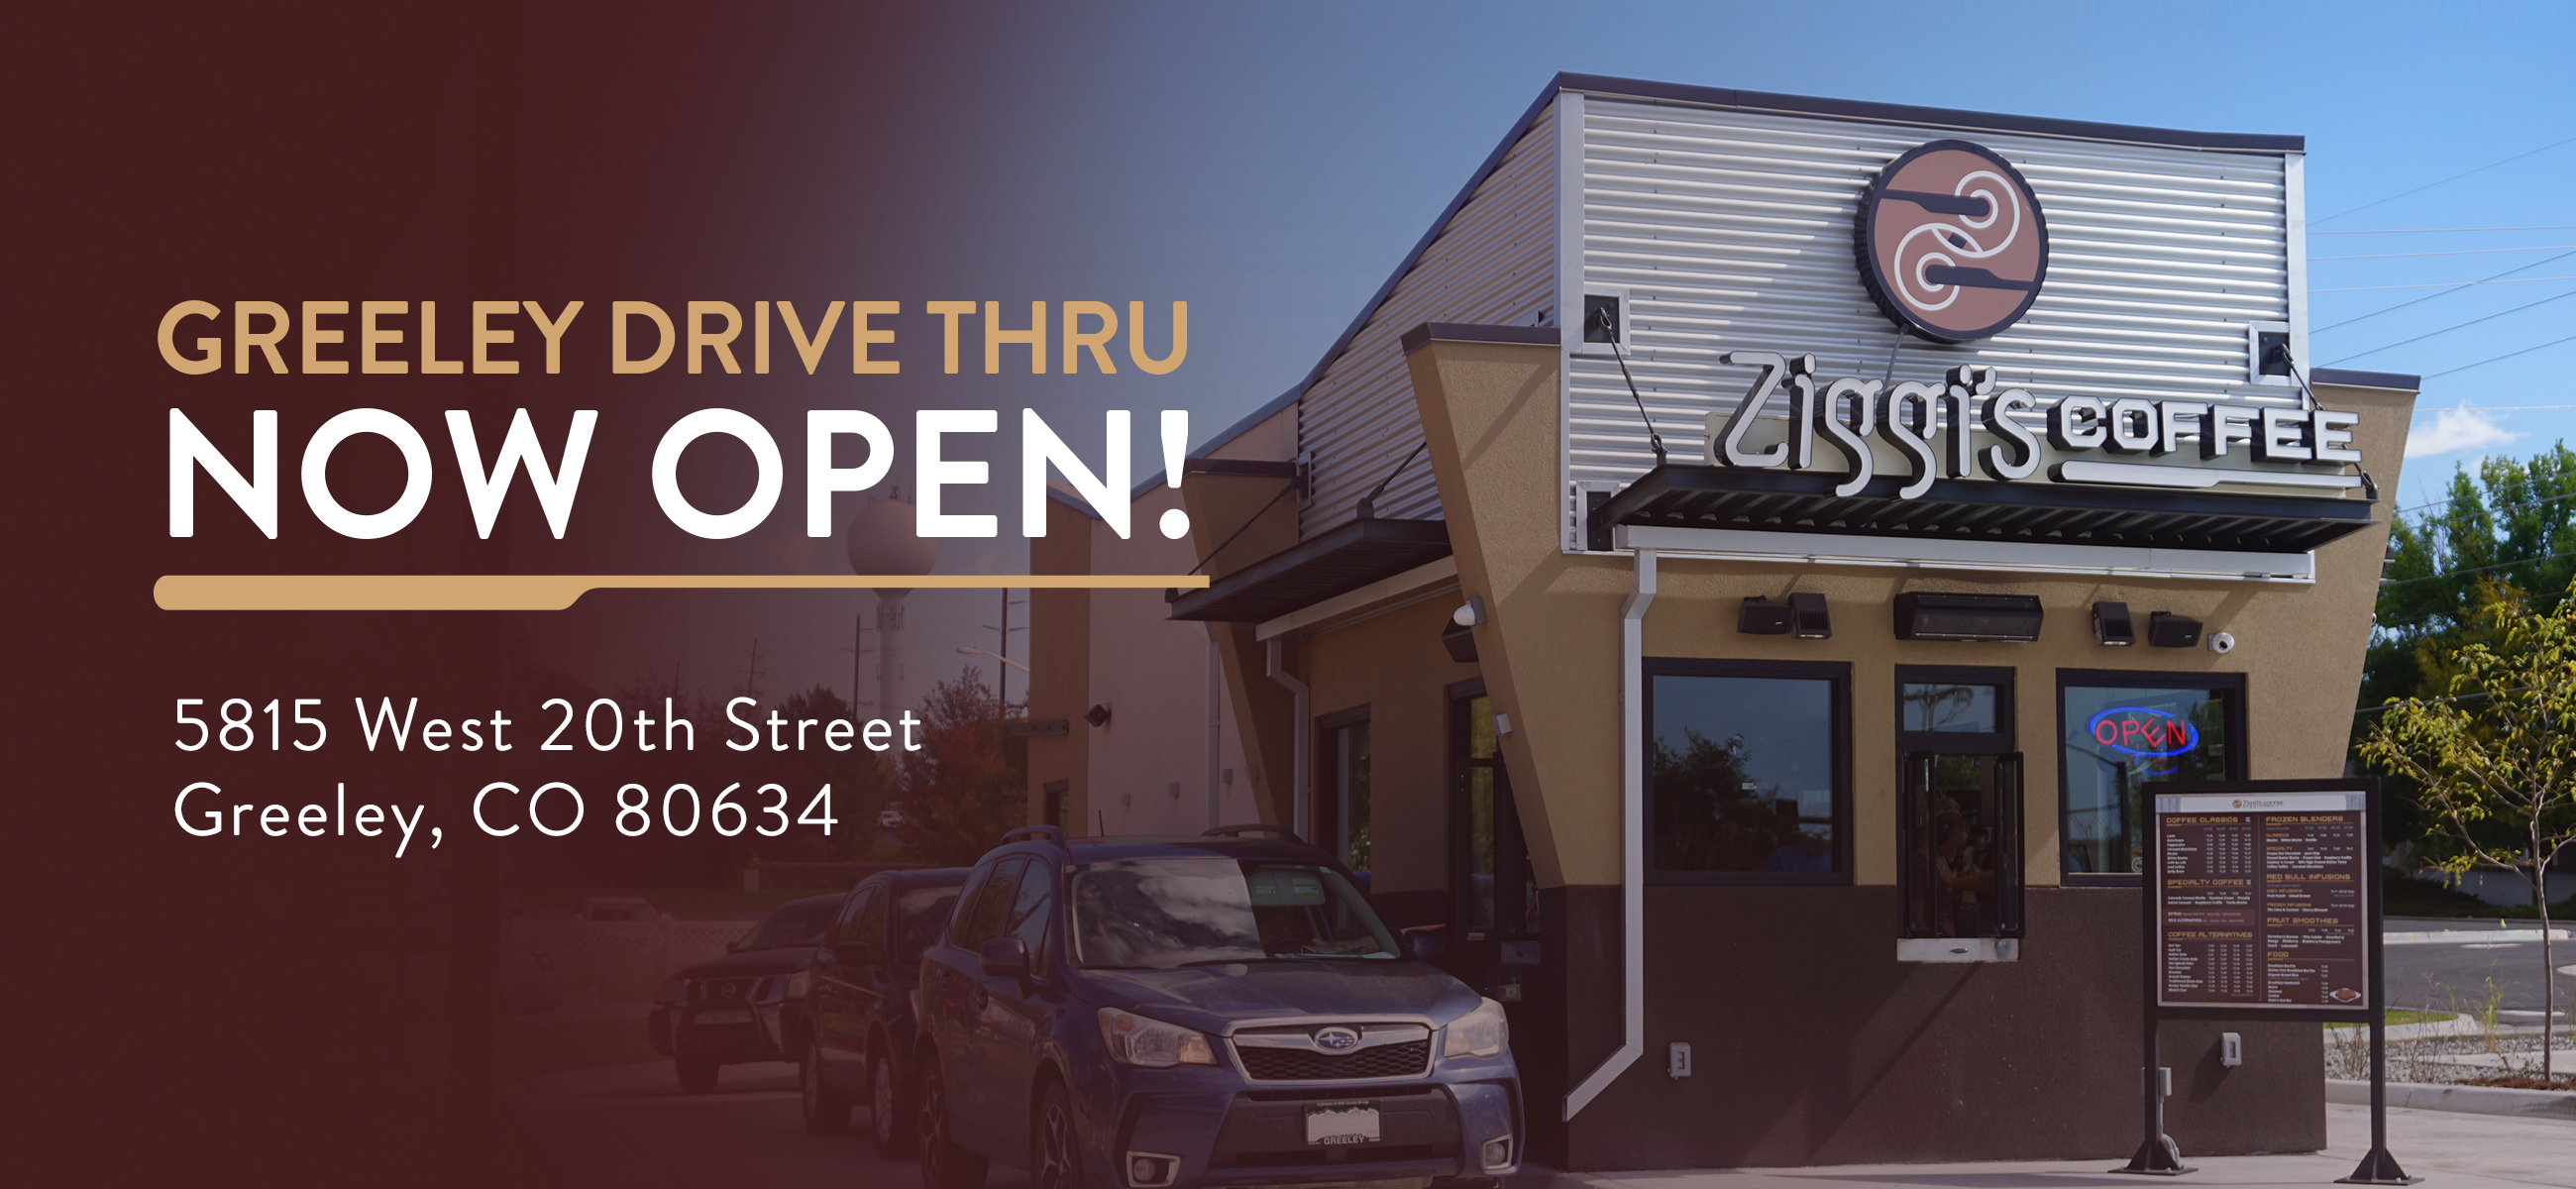 Picture of new double-sided Ziggi's Coffee drive thru in Greeley, Colorado